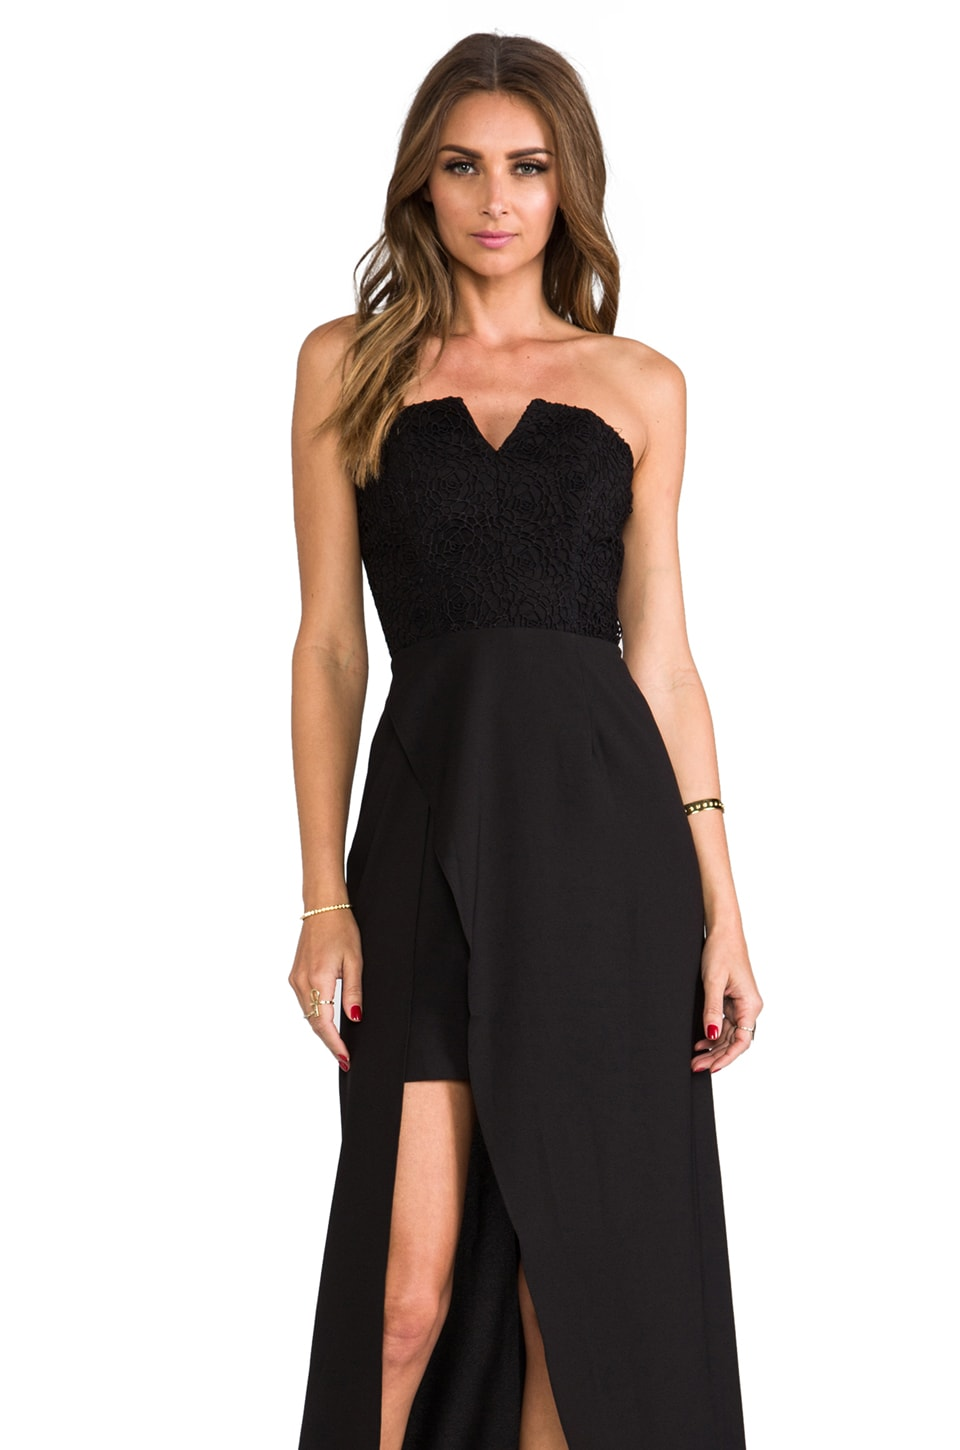 keepsake First Date Maxi Dress in Black/Black Lace